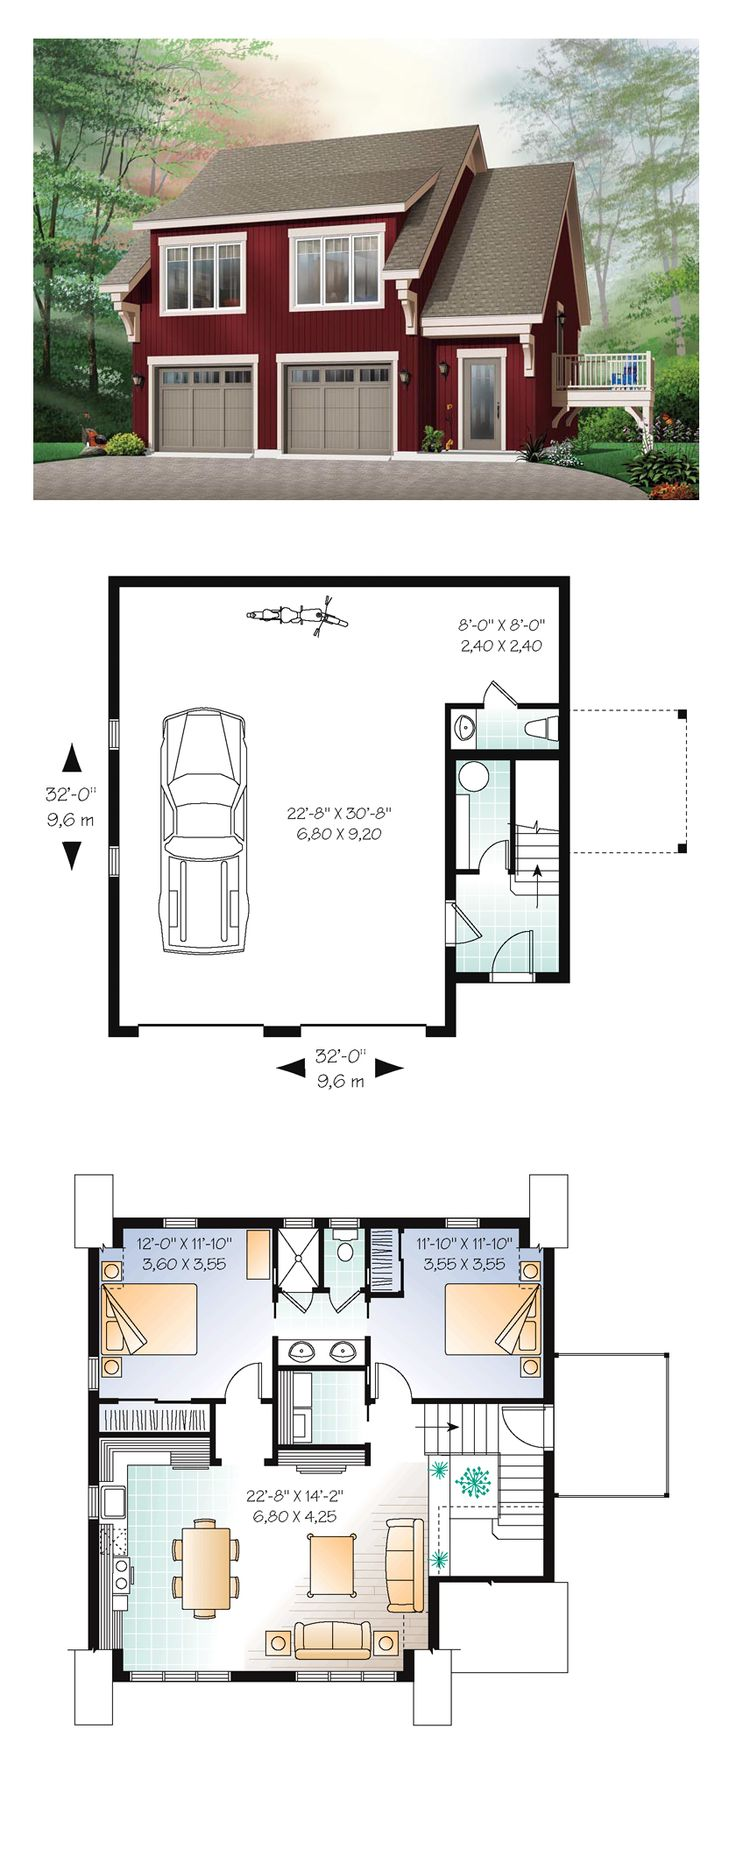 excellent garage and apartment. Garage Apartment Plan 64817  Total Living Area 1068 sq ft 2 50 best Plans images on Pinterest